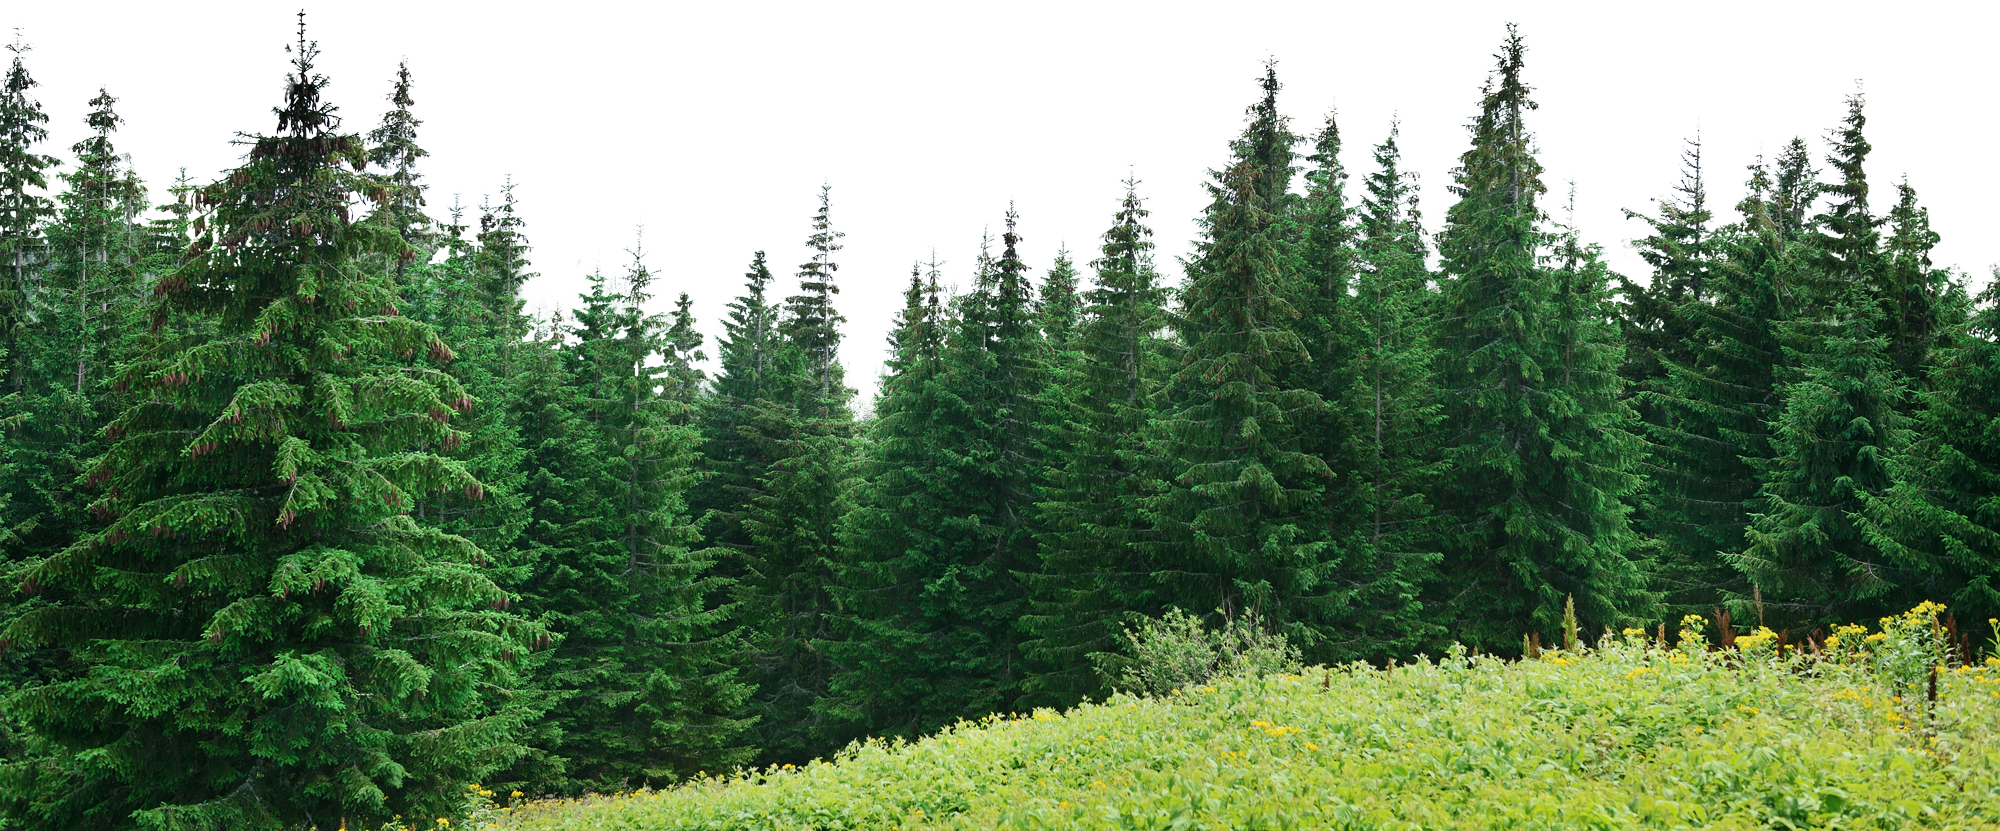 Pixels and bushes pinterest. Pine trees png png freeuse stock